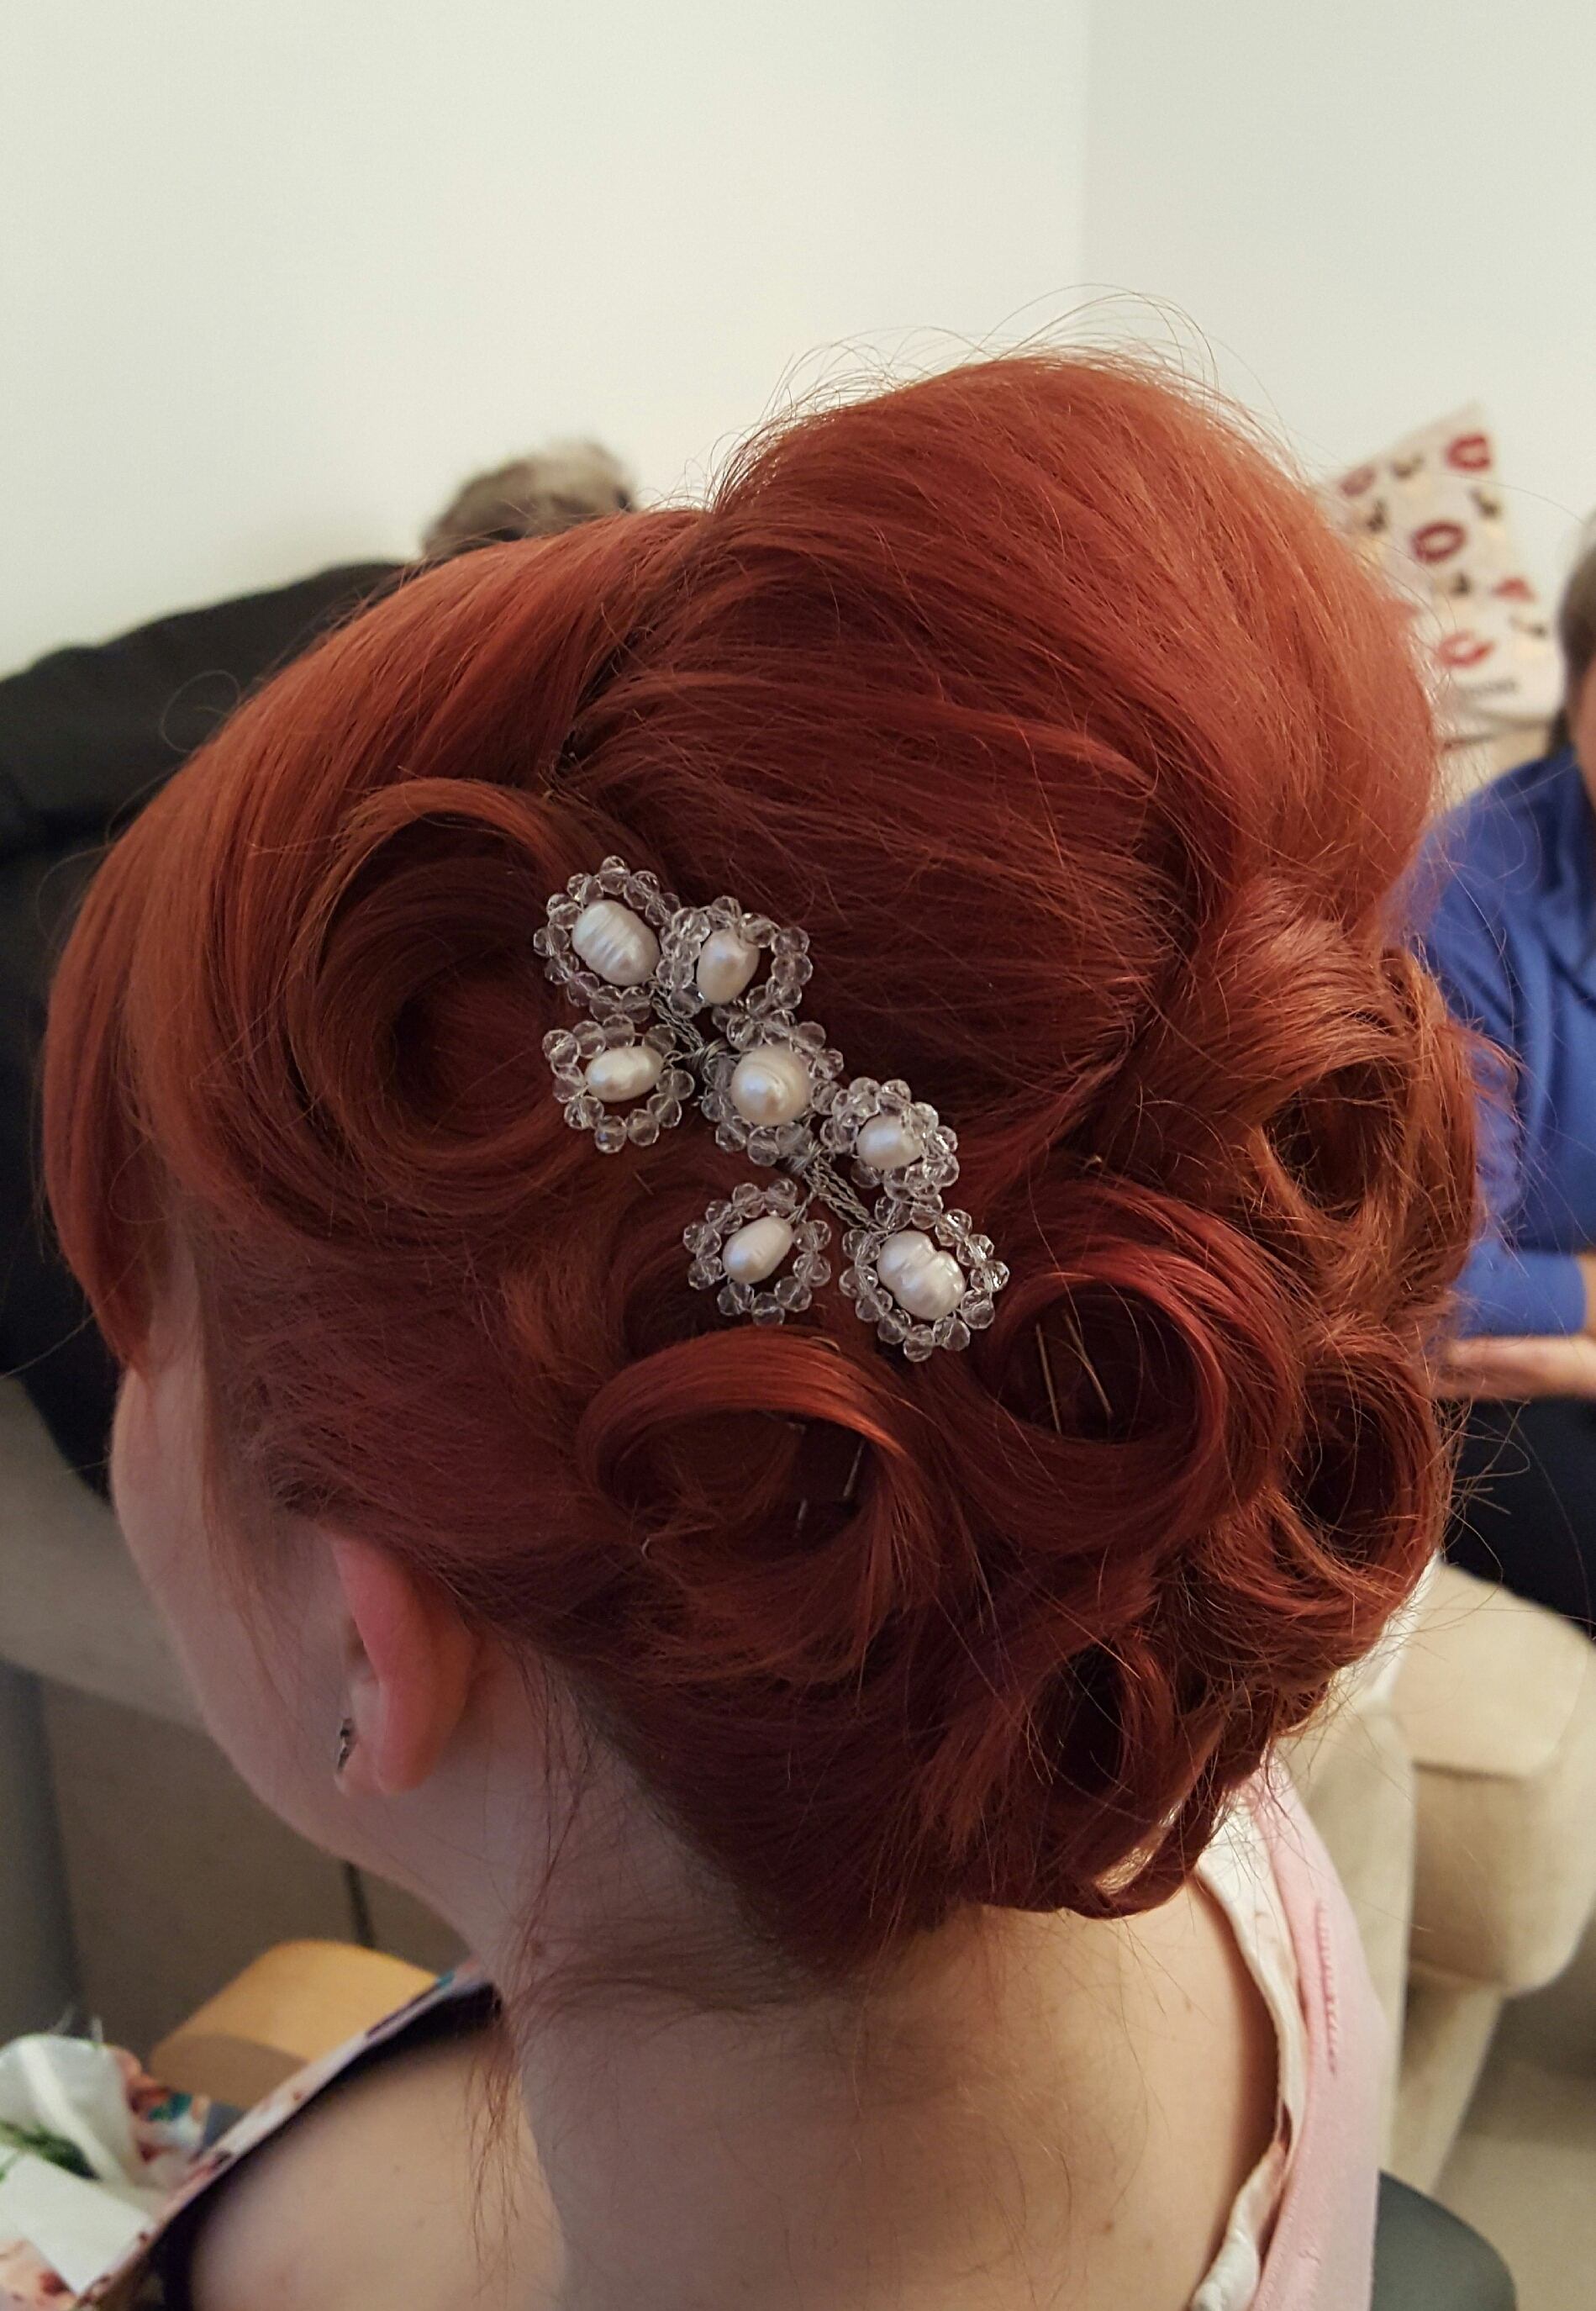 Wedding Hair Terri Pinned to Perfection Wedding Hairdressing Bridal Hair Ilfracombe North Devon Tunnels Beaches Watersmeet Hotel Sandy Cove Ash Burton Saunton Sands Ocean Kave Woolacombe Bay Westcott Barton Barnstaple Hotel